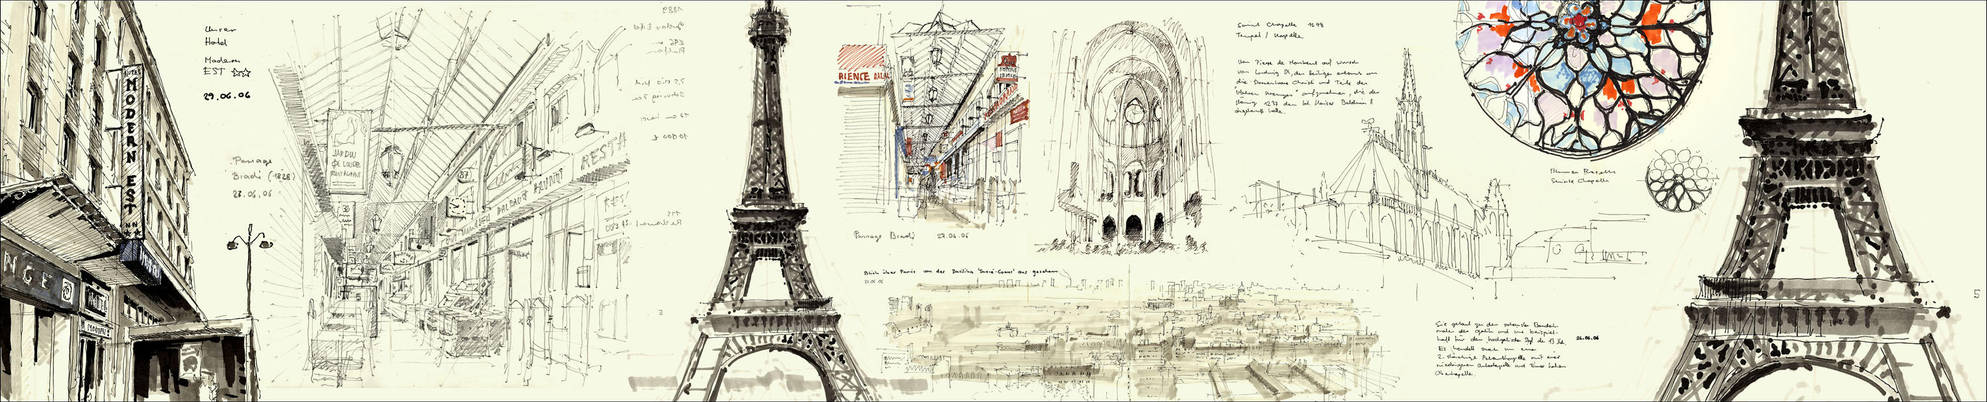 Paris by tomschmid